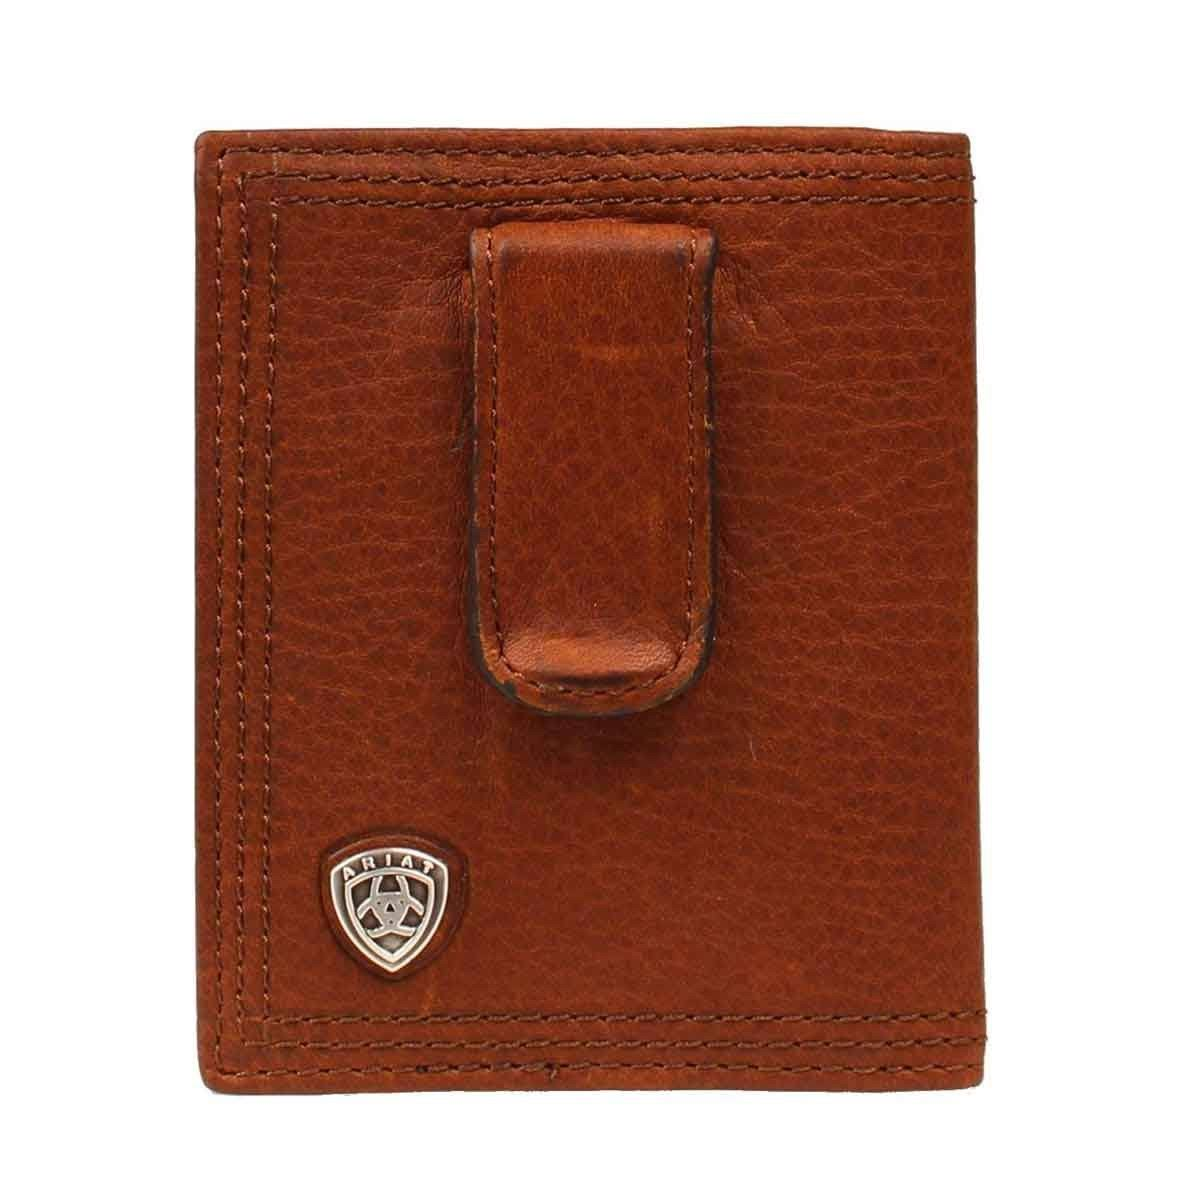 Ariat bFold / Clip Shield SM Wallet, Men's, Brown